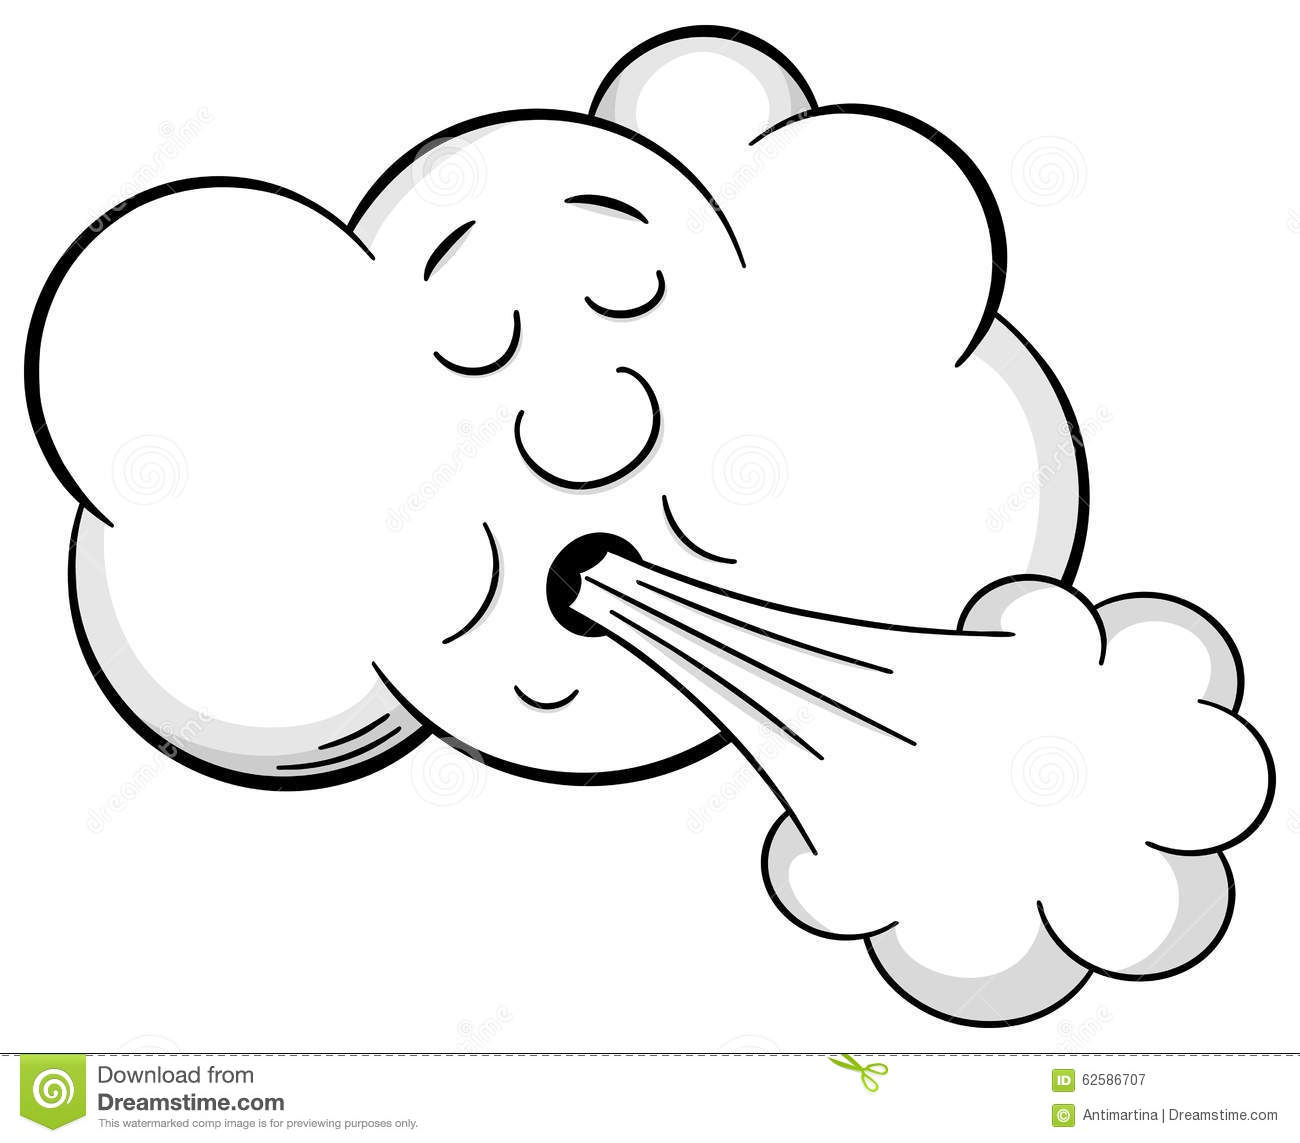 Wind Blows From The Cloud Cartoon Vector